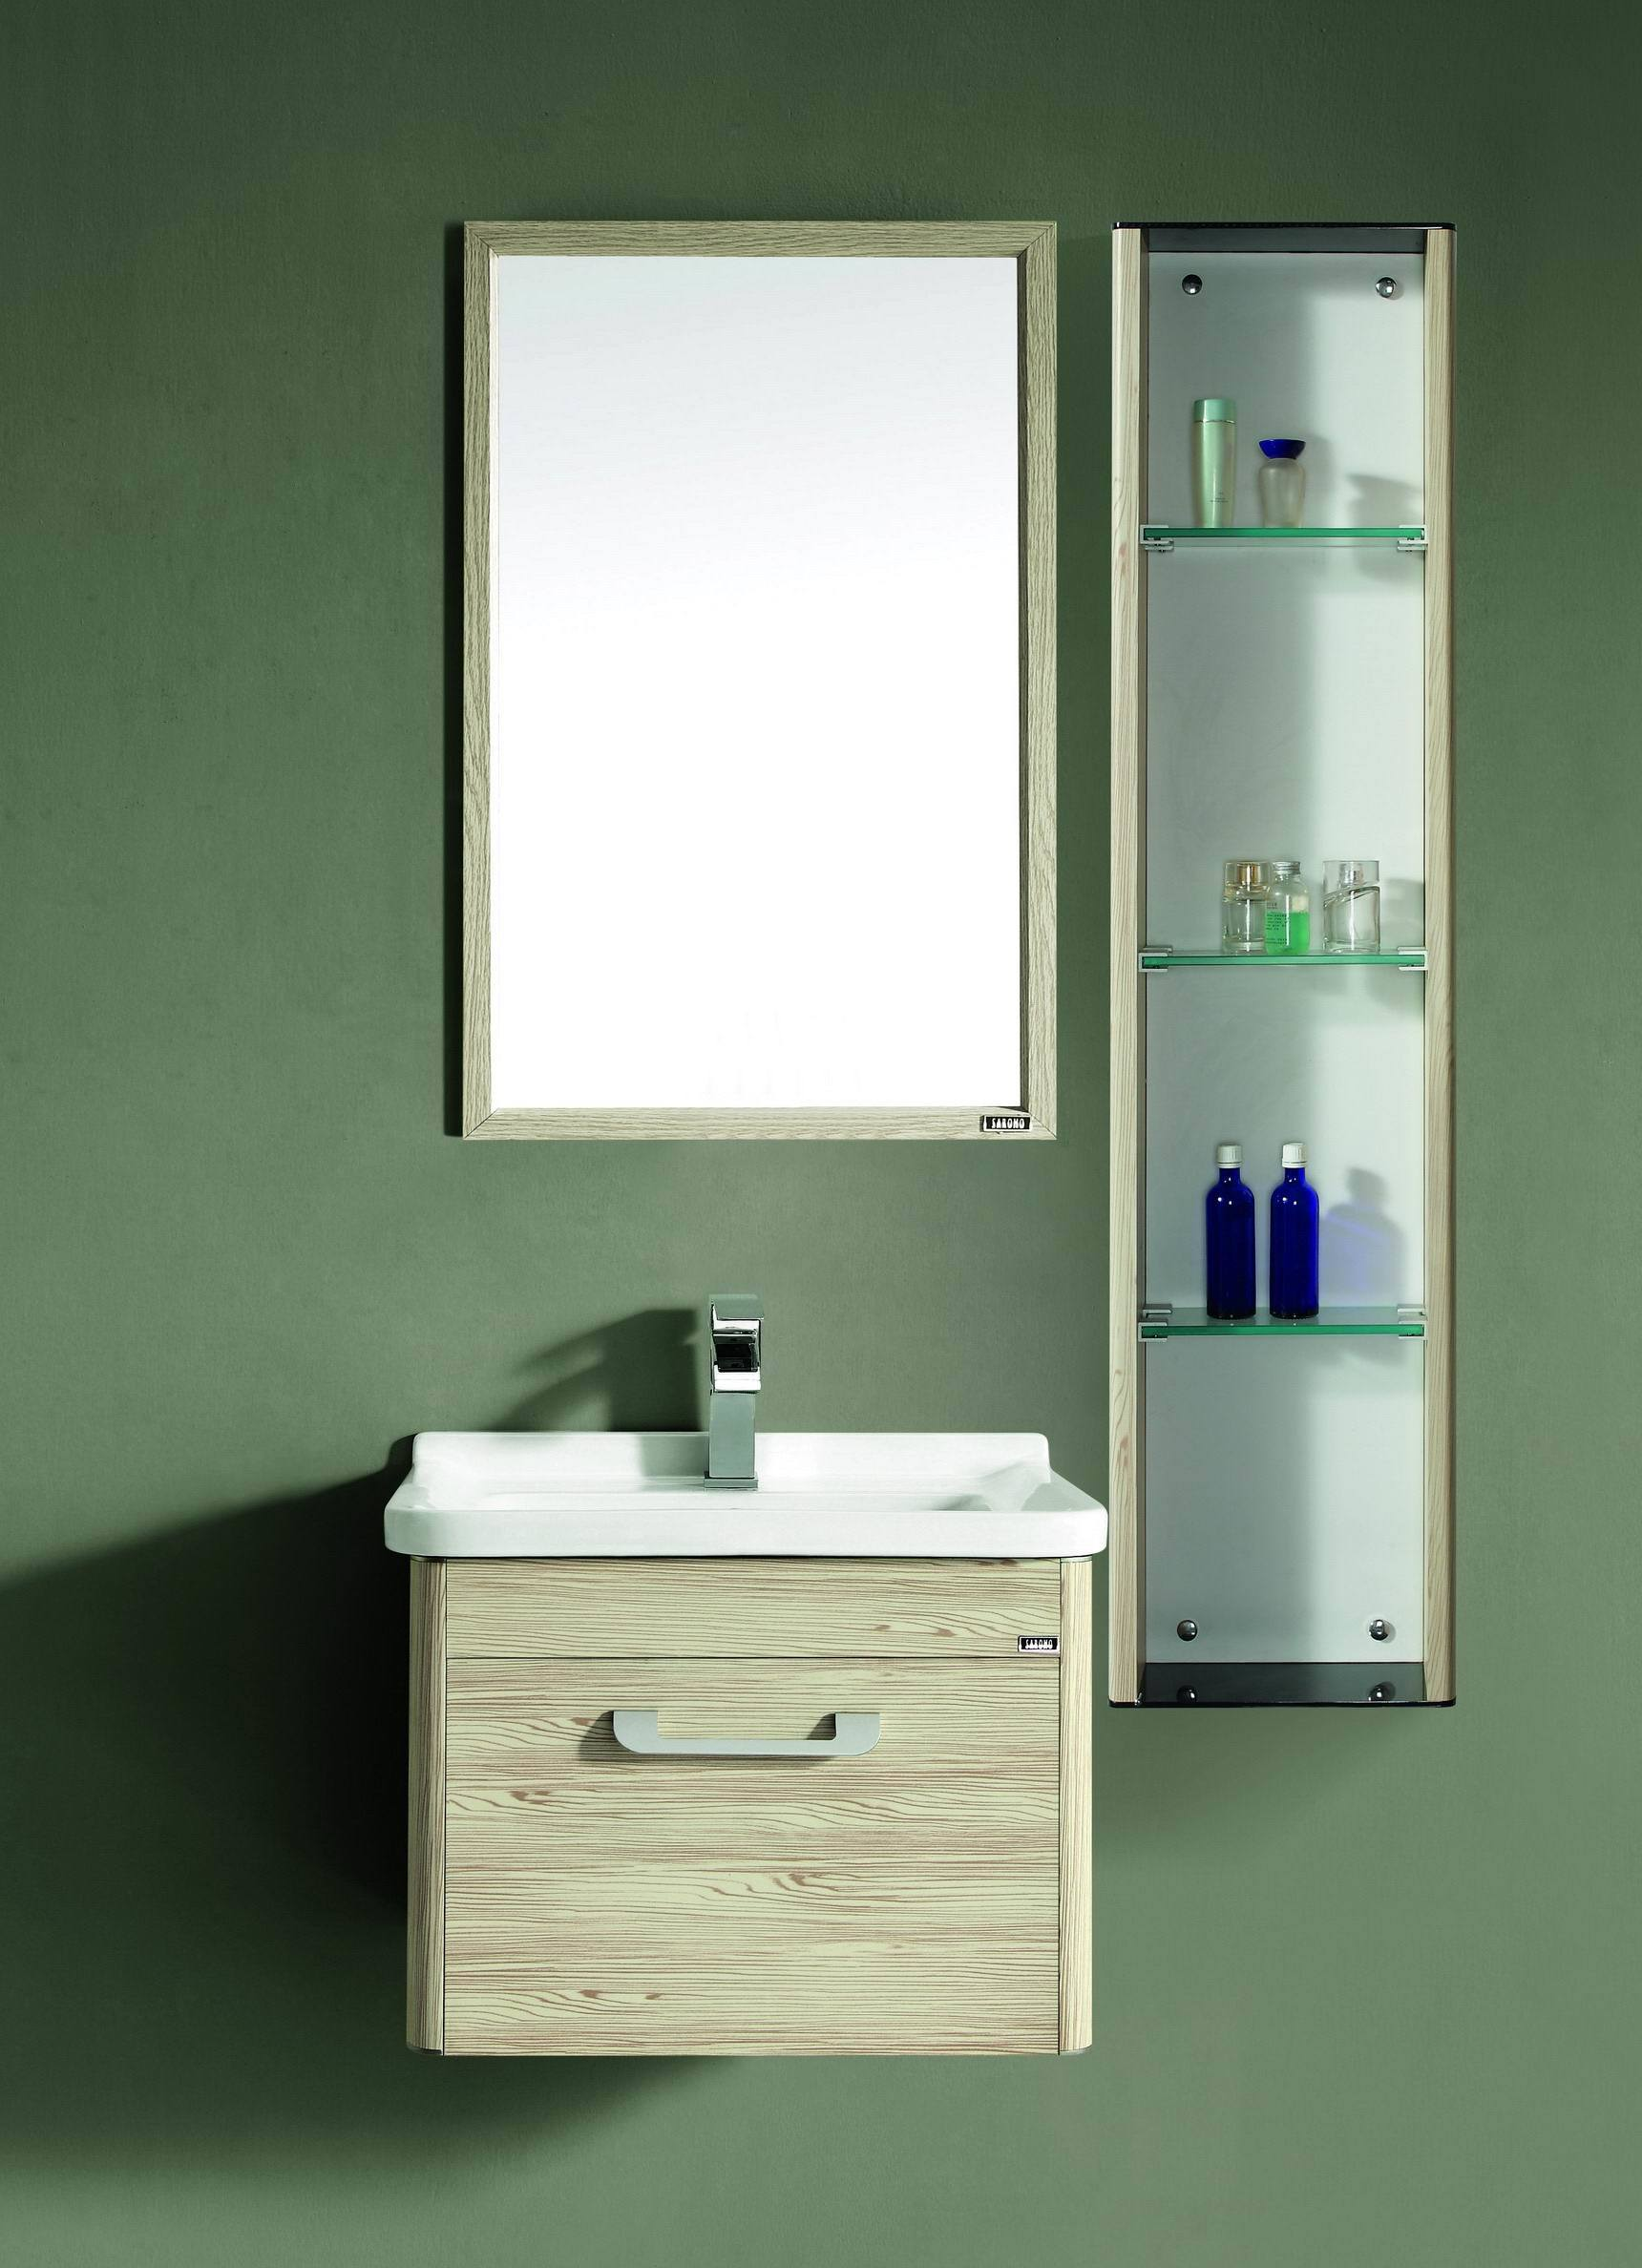 China Metal Bathroom Cabinet Vanity Ws 66006 China Stainless Cabinet Bathroom Appliance